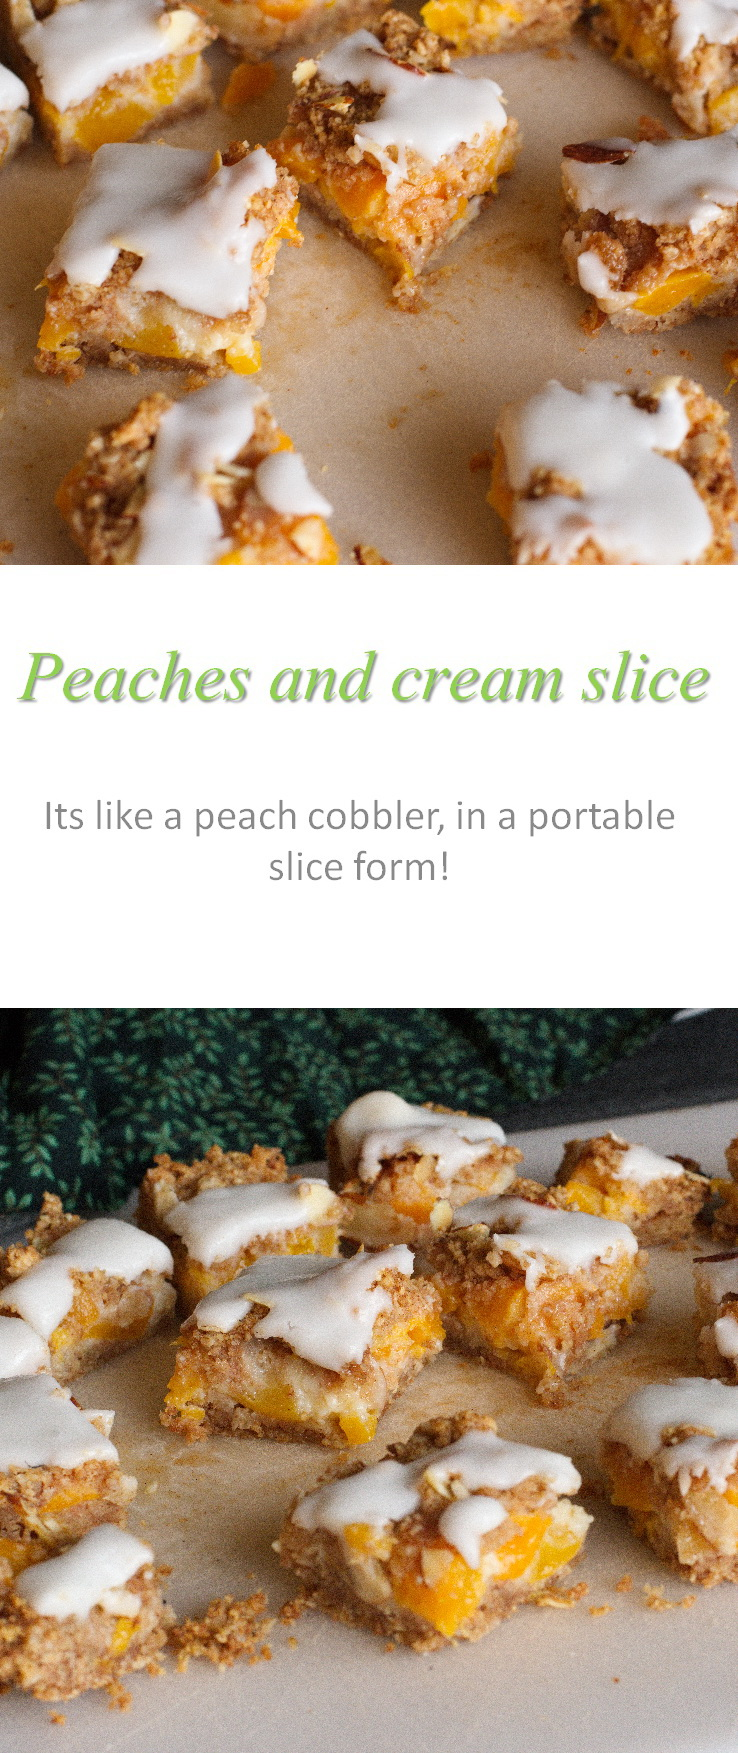 A peaches and cream bar recipe that contains lots of oats, cinnamon and fruit - can be adapted to whatever fruit is in season! #peaches